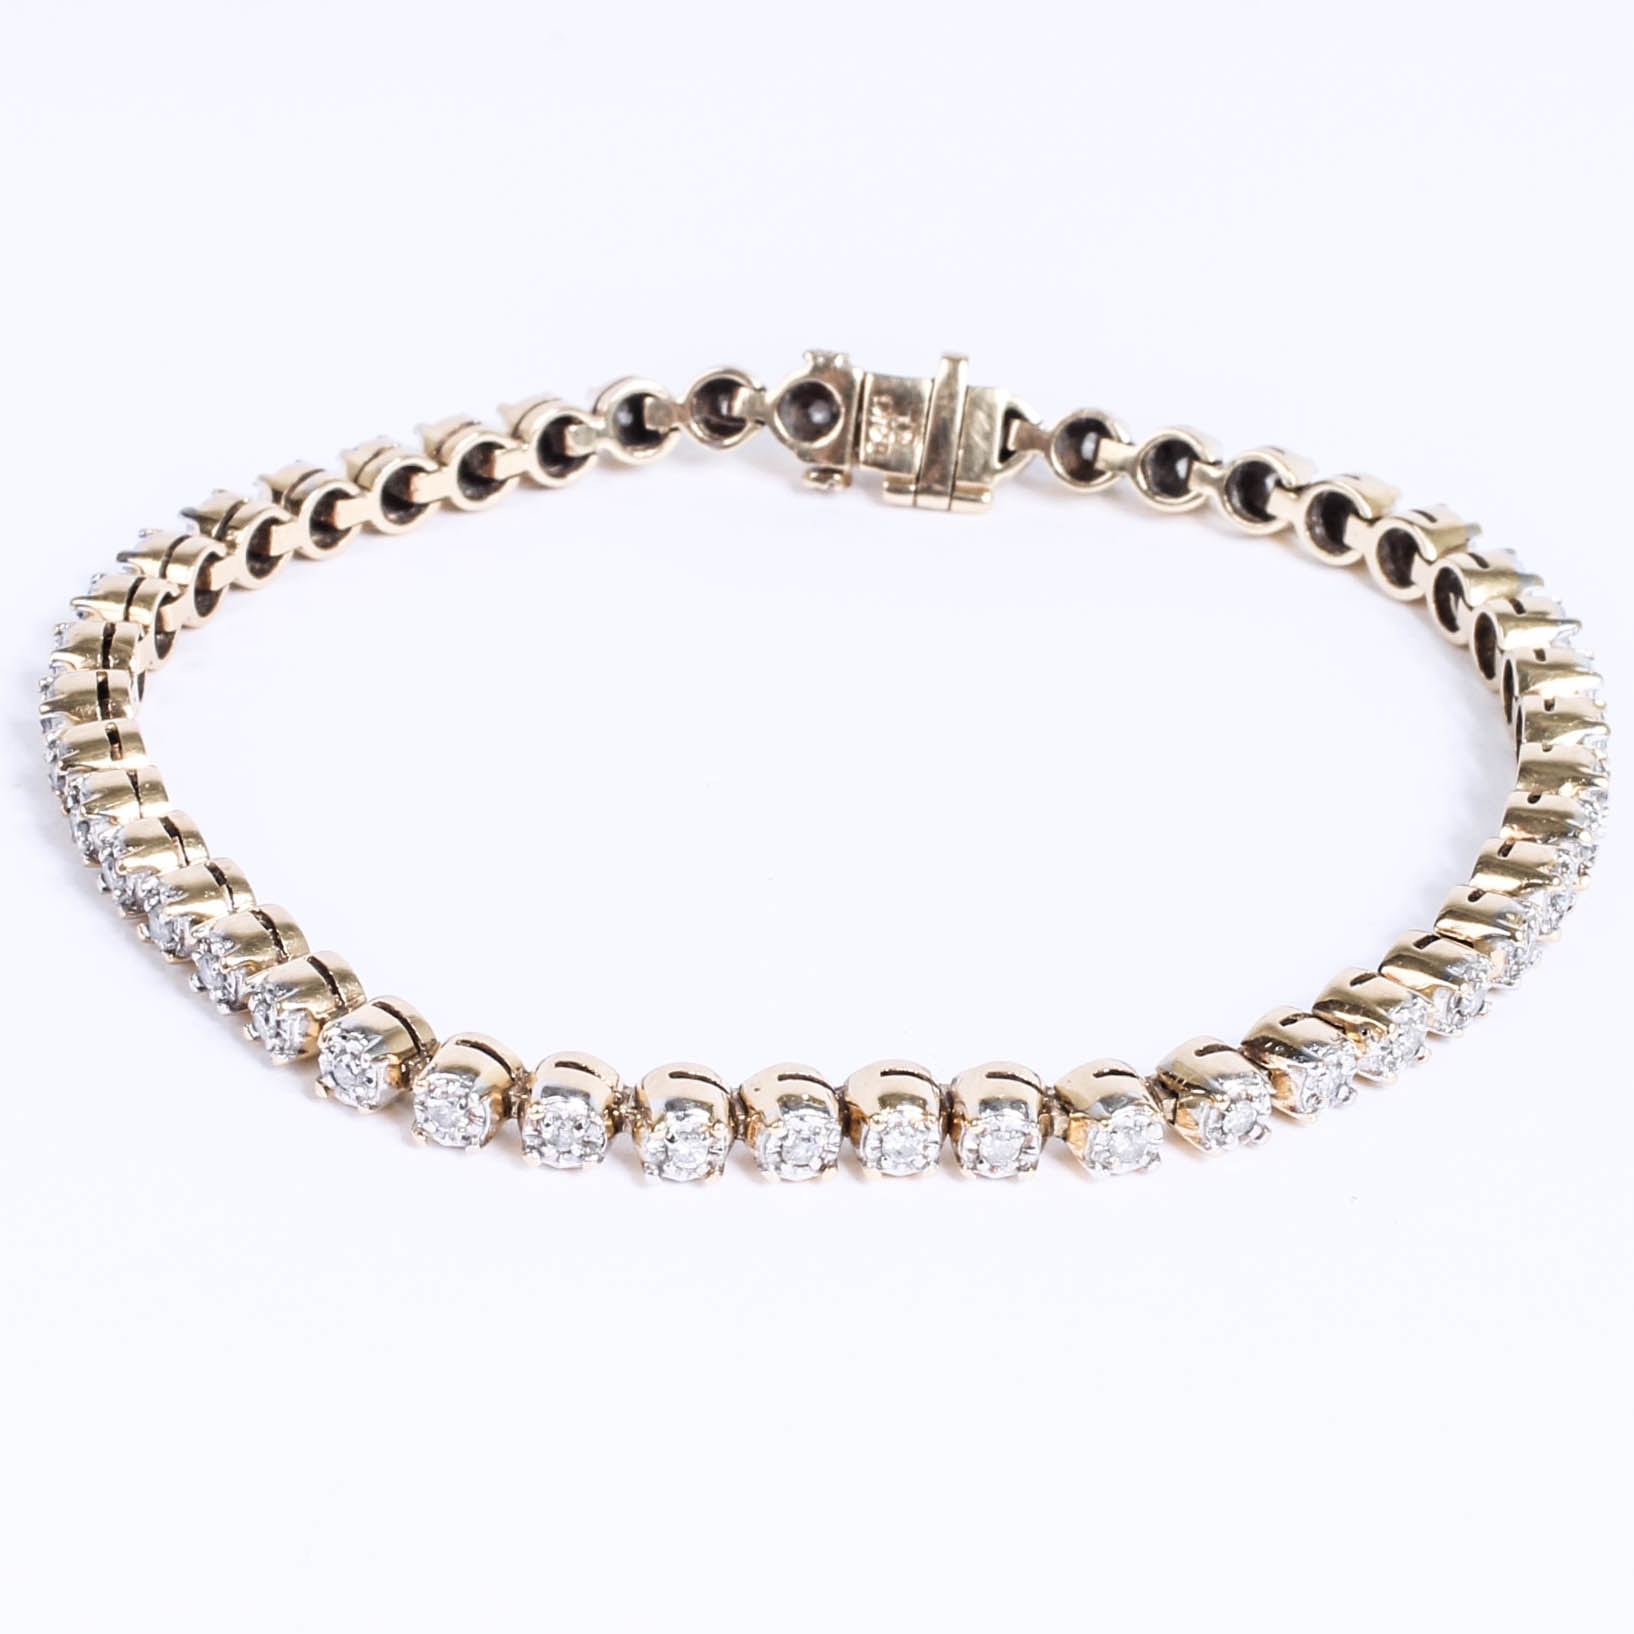 14K Yellow Gold and Diamond Barrel Link Bracelet